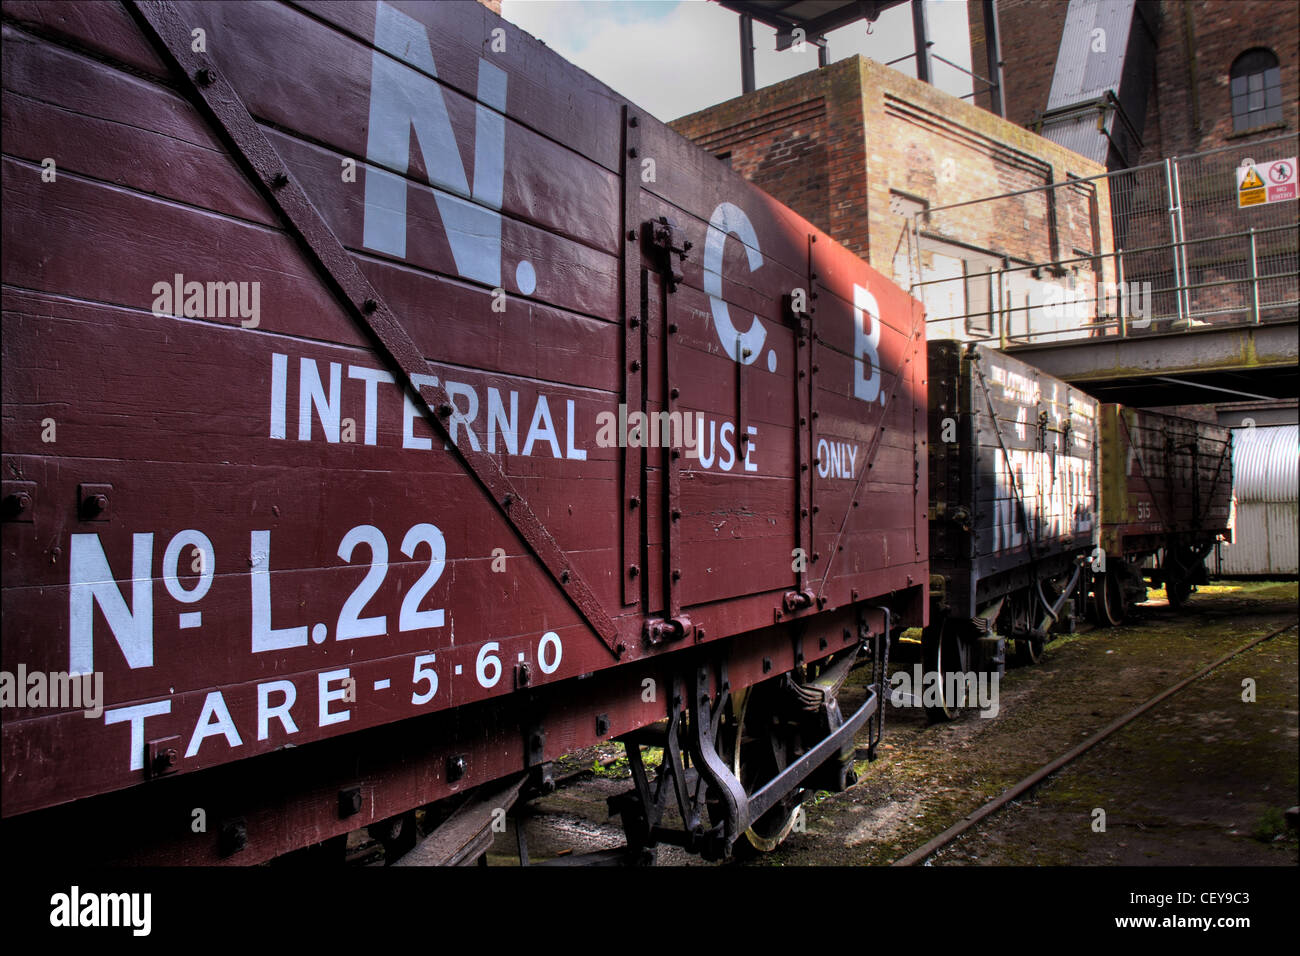 NCB,British,Rail,BR,coal,truck,National,Coal,Board,internal,use,only,No,L22,tare,560,mine,pit,head,pithead,midlothian,mining,museum,red,railroad,british,UK,united,kingdom,transport,gotonysmith,National,Mining,Museum,Scotland,Lady,Victoria,Colliery,National,Union,Of,Mineworkers,England,Scottish,Newtongrange,The,Scottish,Mining,Museum,Trust,railyard,rail,yard,1950s,1960s,truck,rail,road,railroad,historic,history,old,antique,gotonysmith,Buy Pictures of,Buy Images Of,Scotlands History,Scotlands History,Coal History,Coal Mining History,Coal Industry